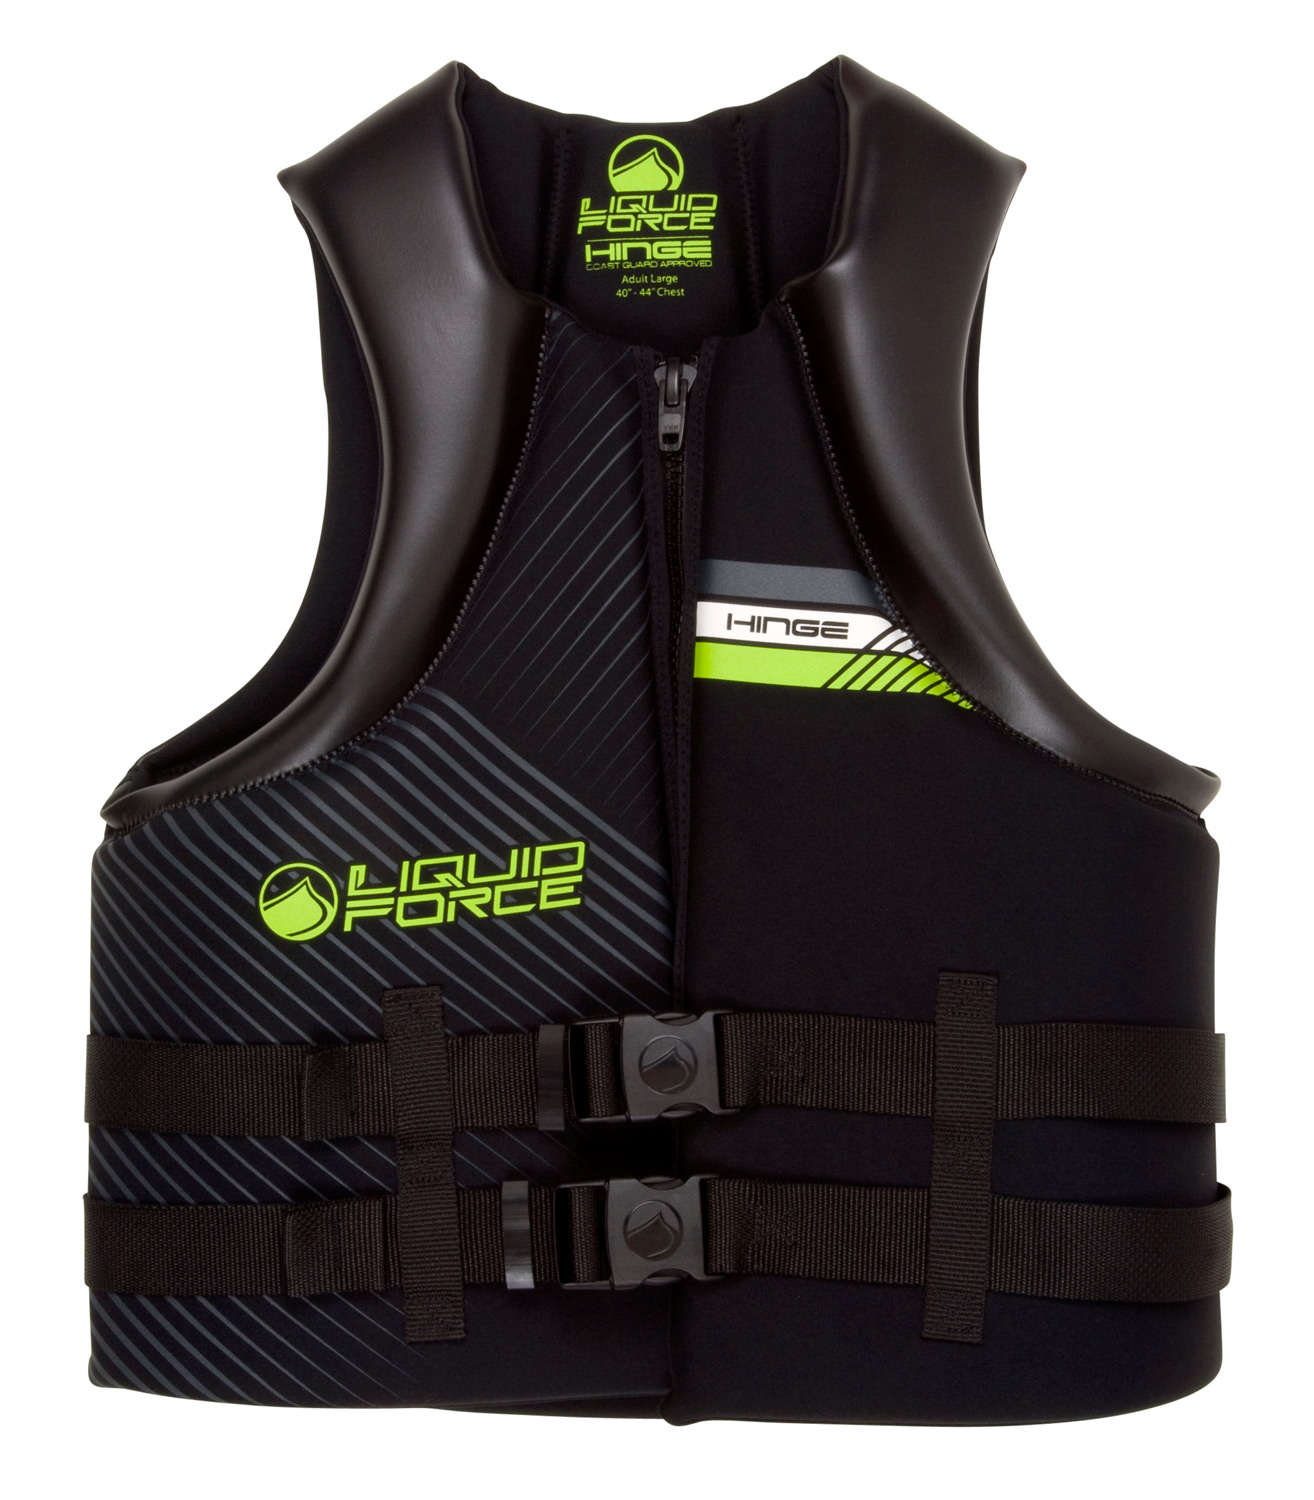 Wake The Hinge uses segmented foam panels and hinge points to allow for superior movement in a CGA vest. There's no comparison to the mobility and comfort and value this vest offers. The segmented sections are beveled to hinge with your every move and provide a high-end vest feel.Key Features of the Liquid Force Hinge CGA Wakeboard Vest: US Coast Guard Approved: Maximum flotation and safety Segmented Shoulders: Rounded separate sections of foam that flex and provide mobility Oversized Arm Holes: Extra space and comfort for added mobility Heavy Duty Zipper: Secure, solid hold Hidden Straps: Clean and simple - $63.95